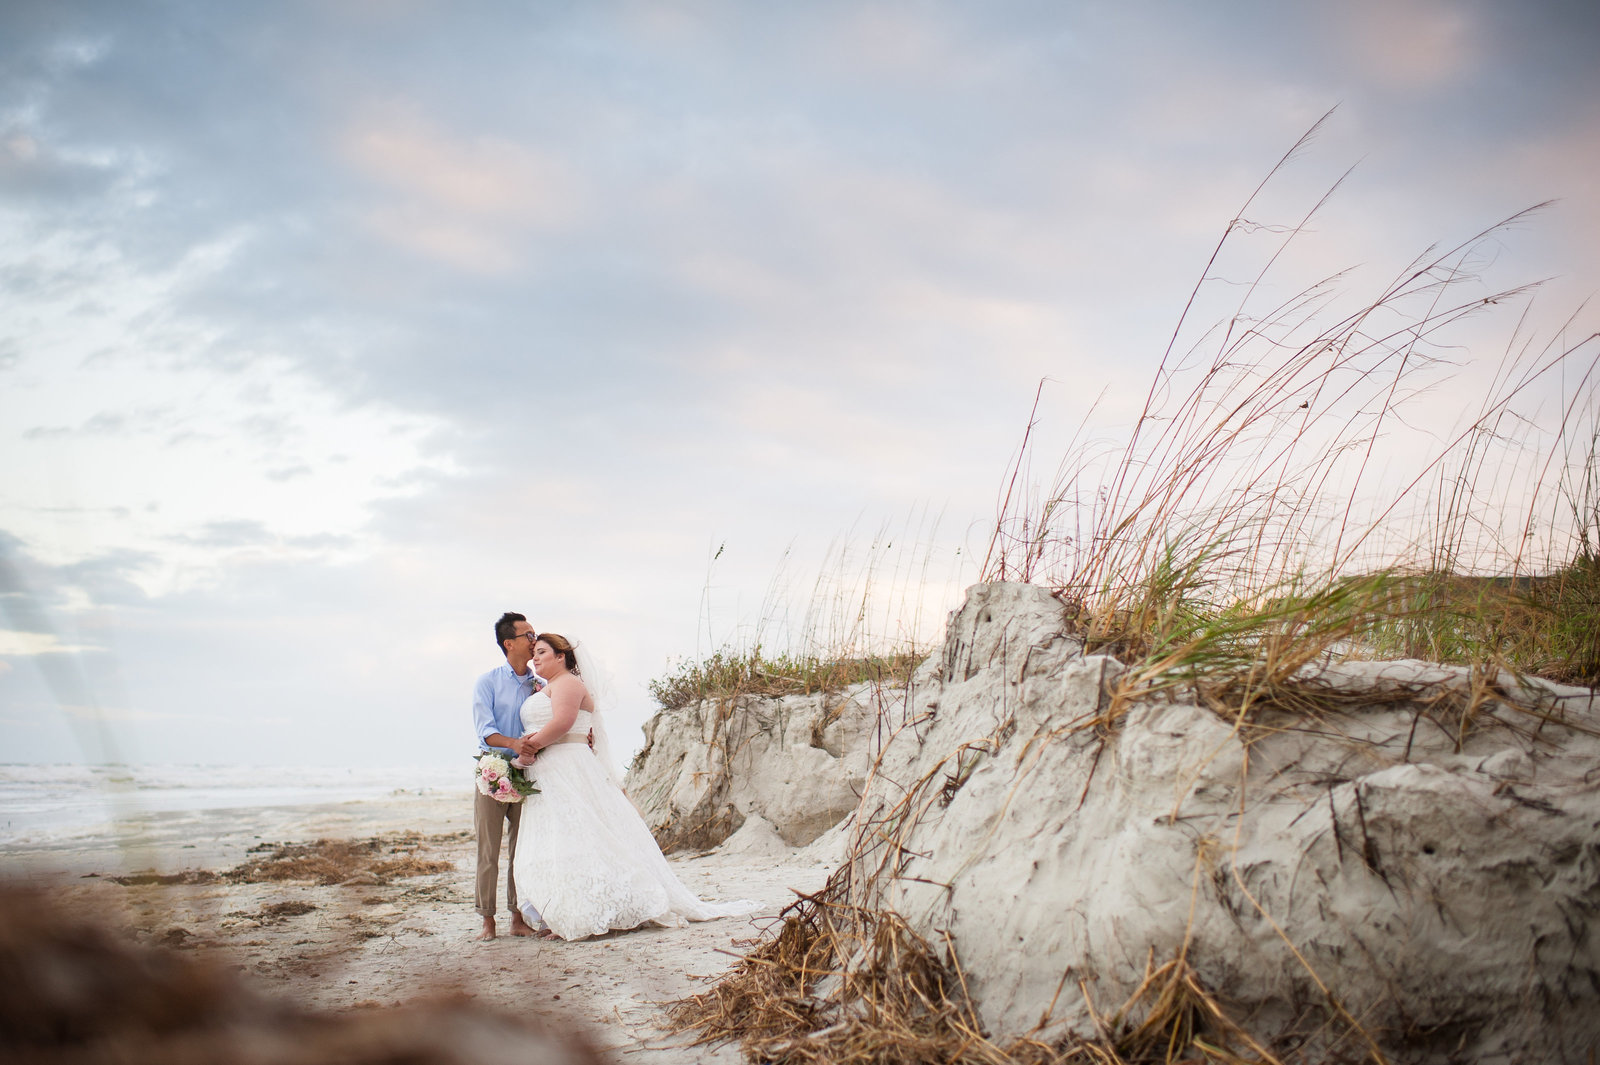 Daytona Beach elopement photographer (2)